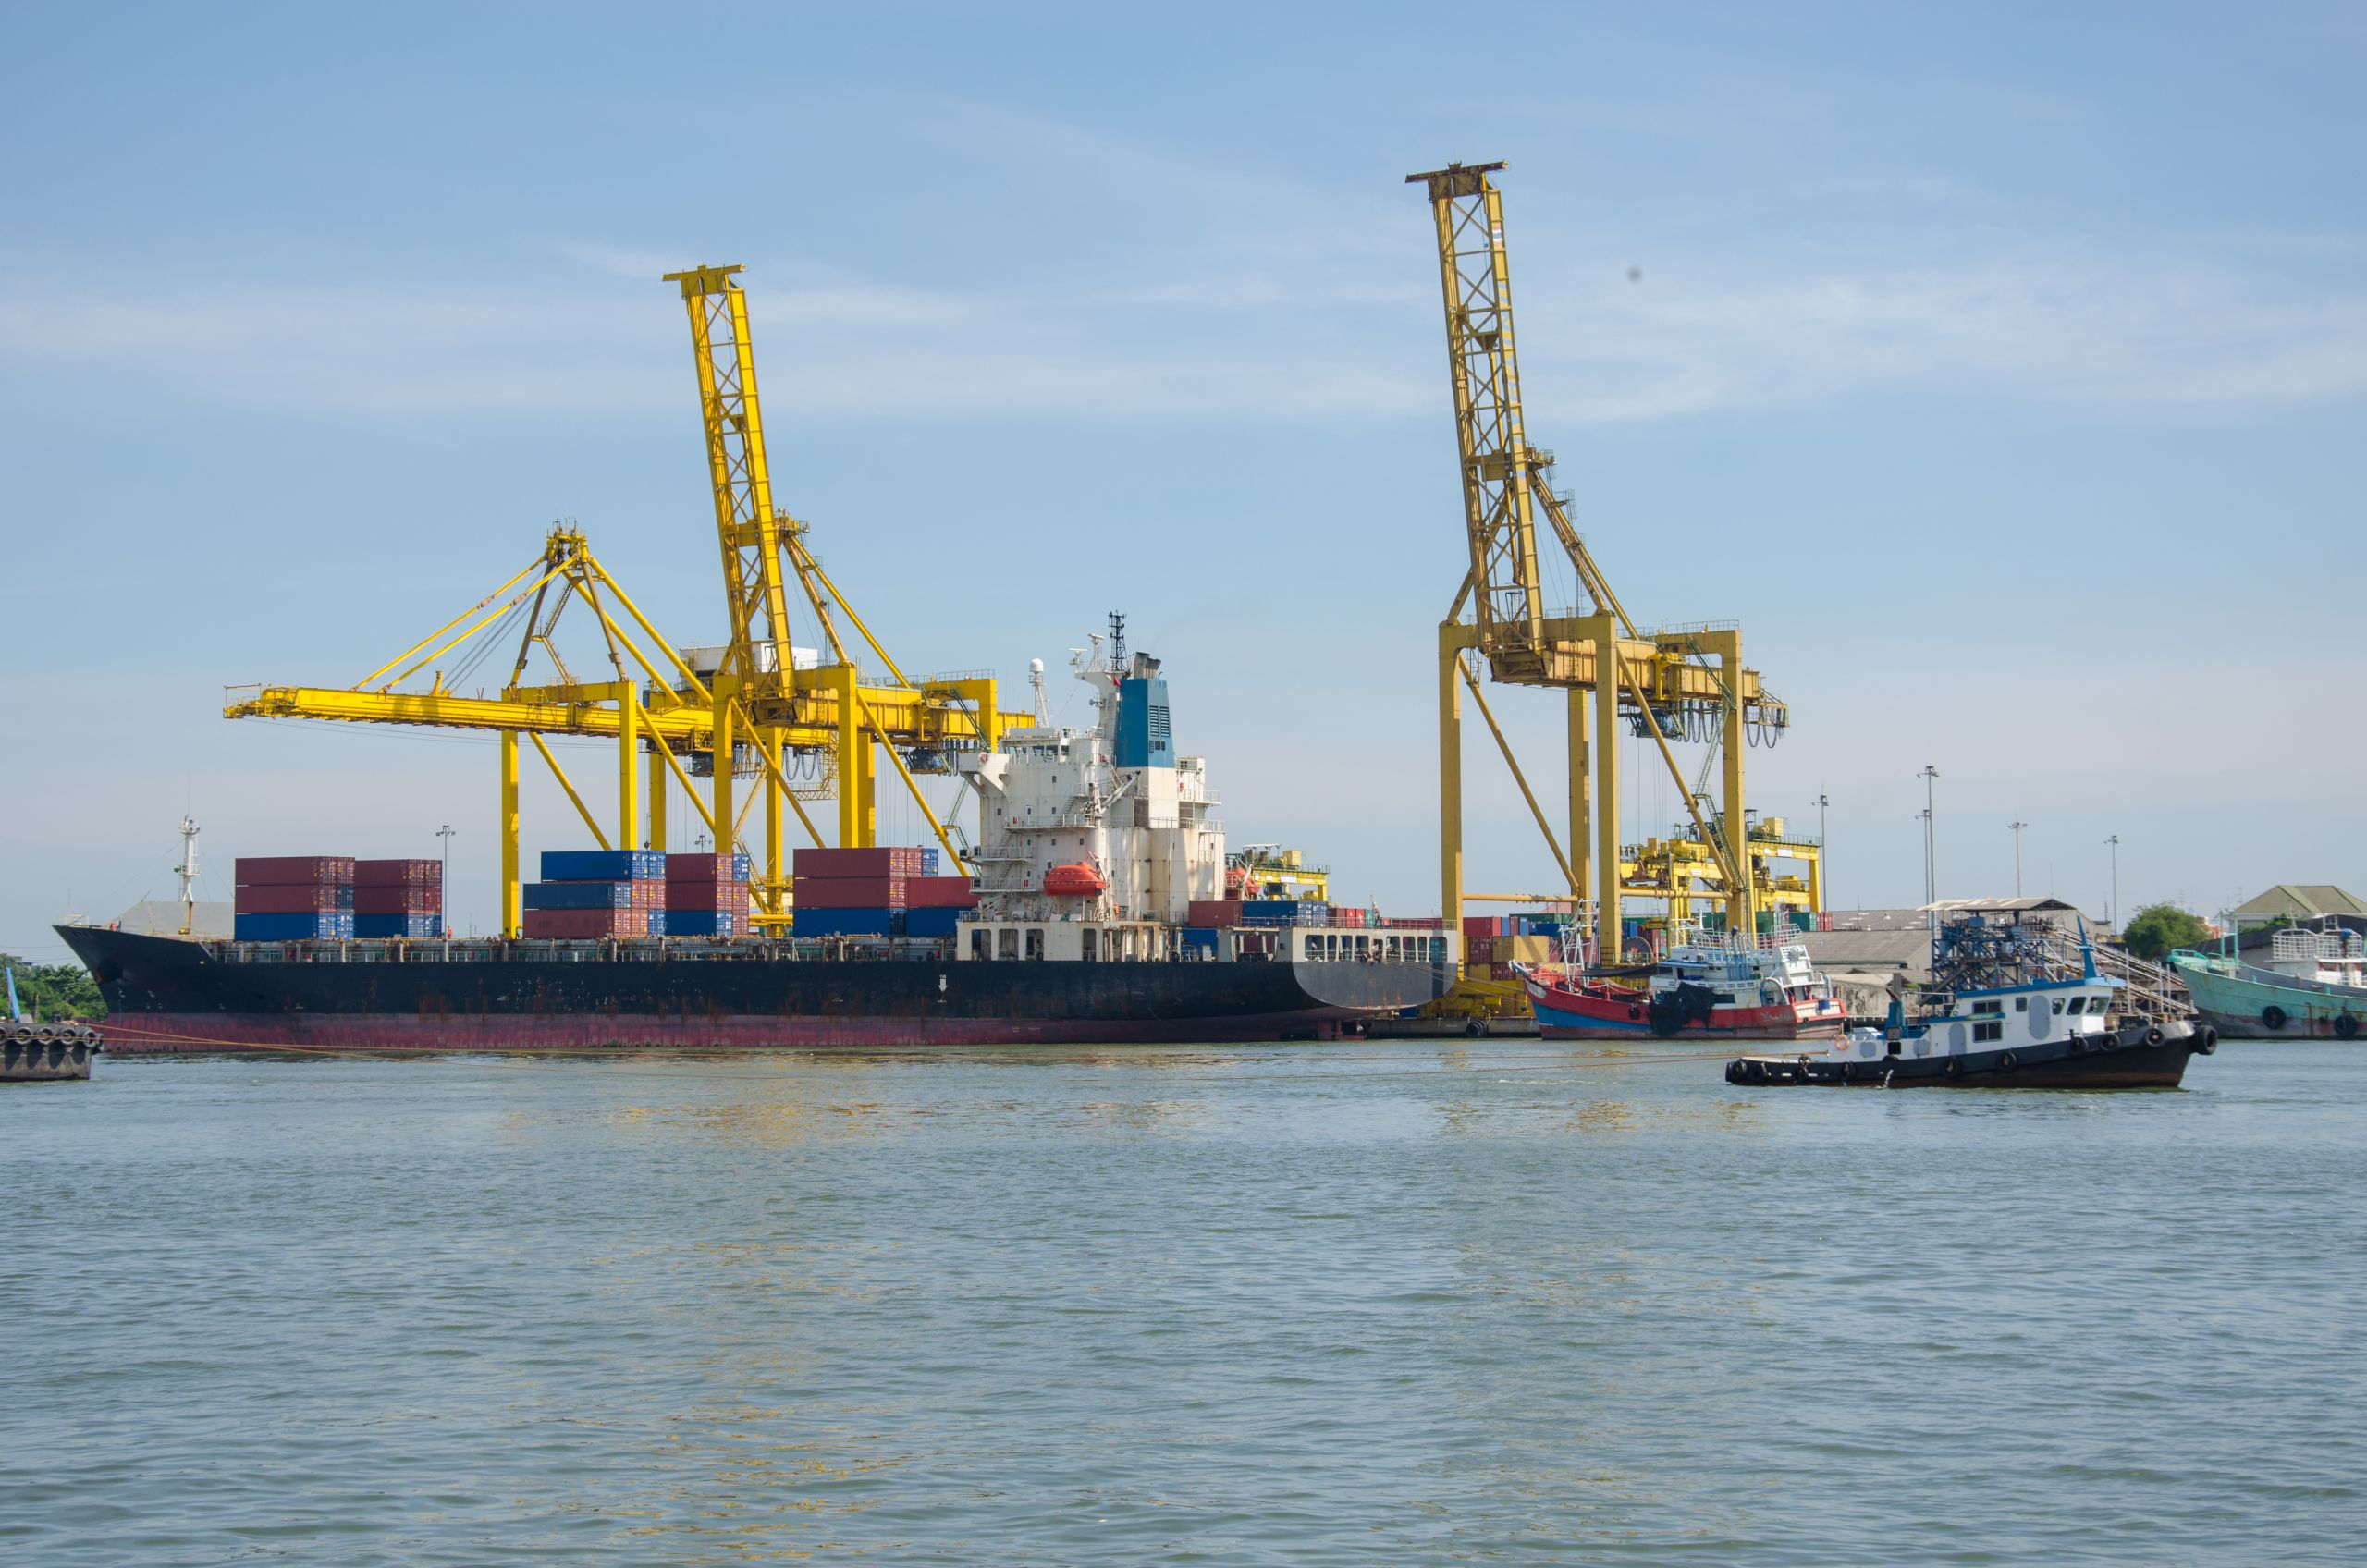 Sea port with containers